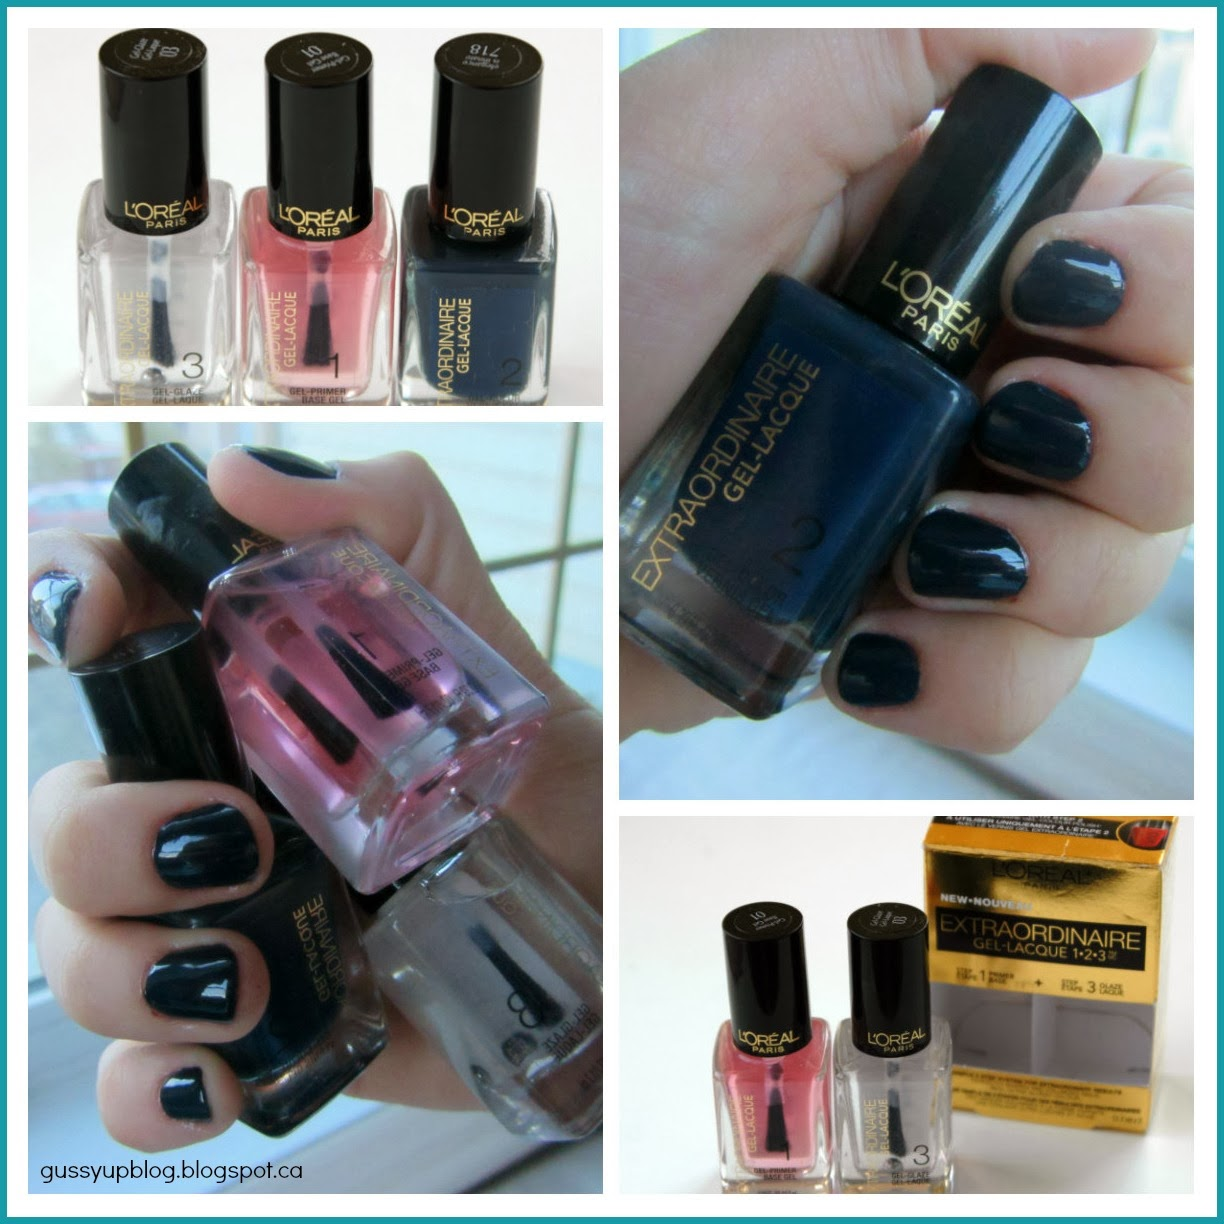 Review, Swatch and Tutorial: L'Oreal Paris Extraordinaire Gel-Lacque 1-2-3 featuring Elegance is Innate Nail Gel-Lacque